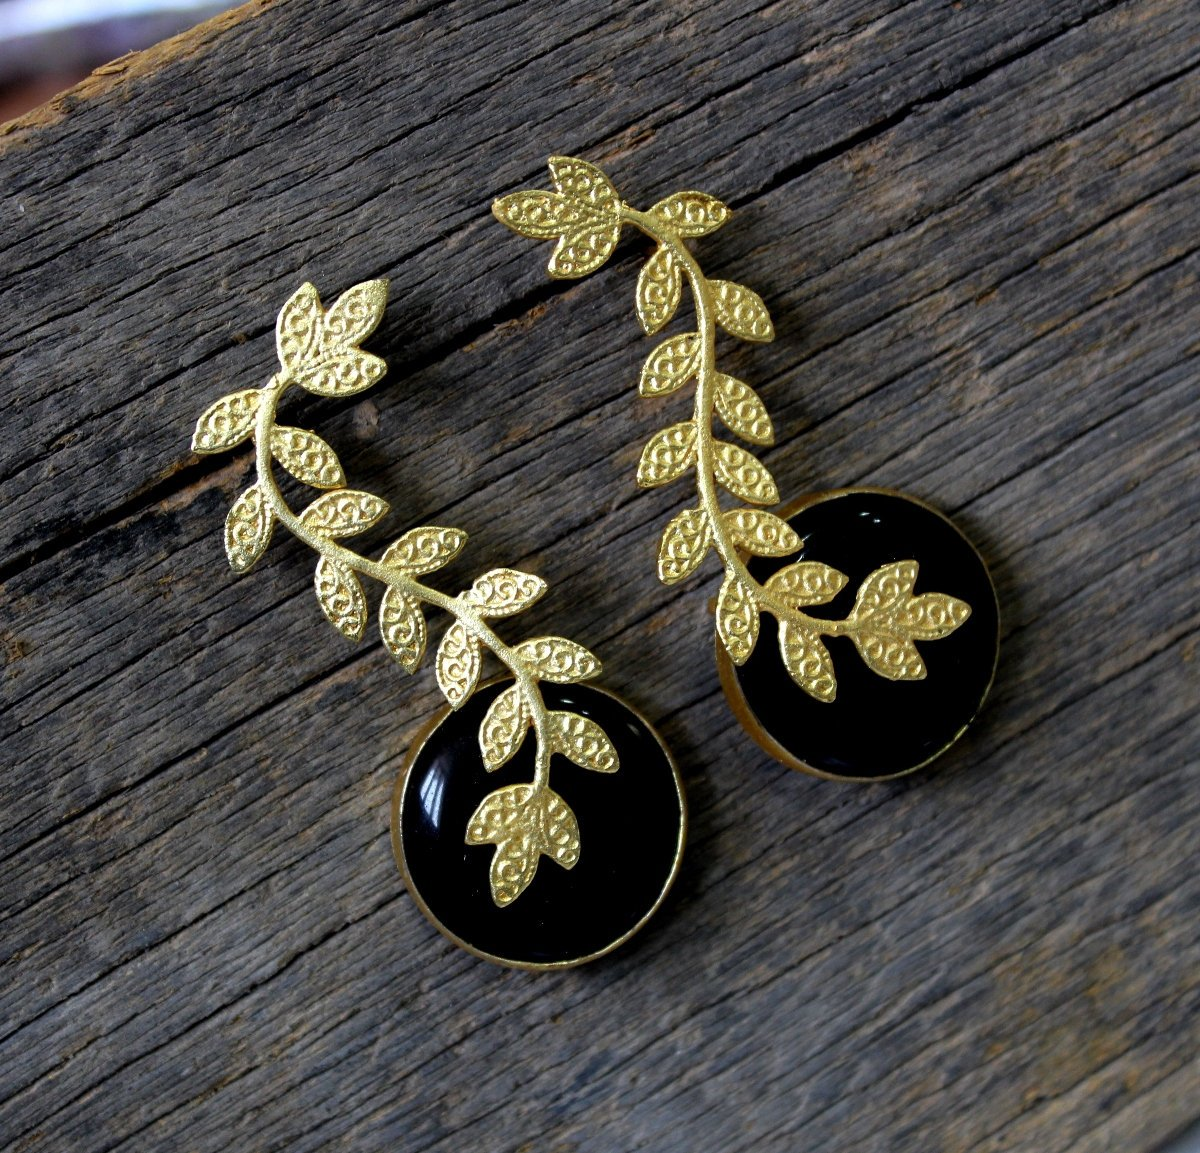 ExquisiteJewelsnGems vine and black circle earrings